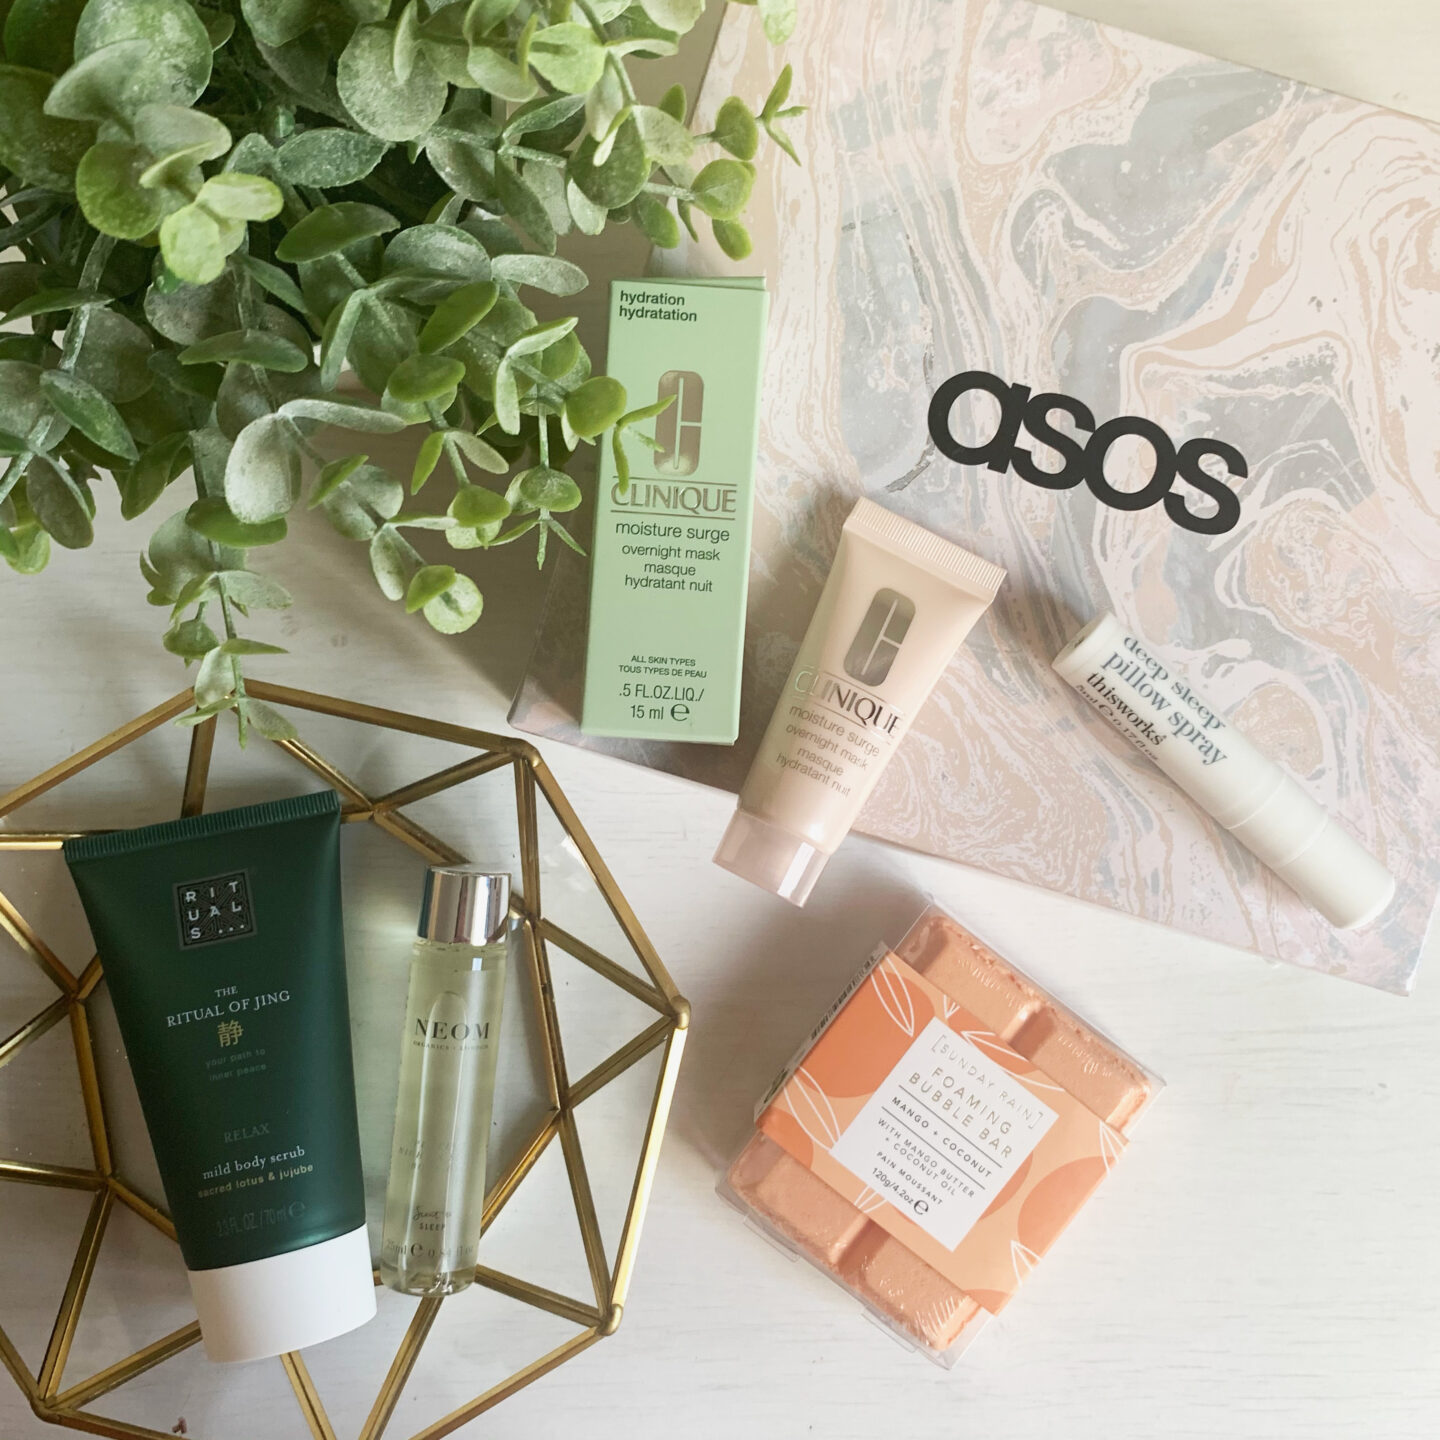 ASOS Beauty Box - November 2020 - Miss Boux